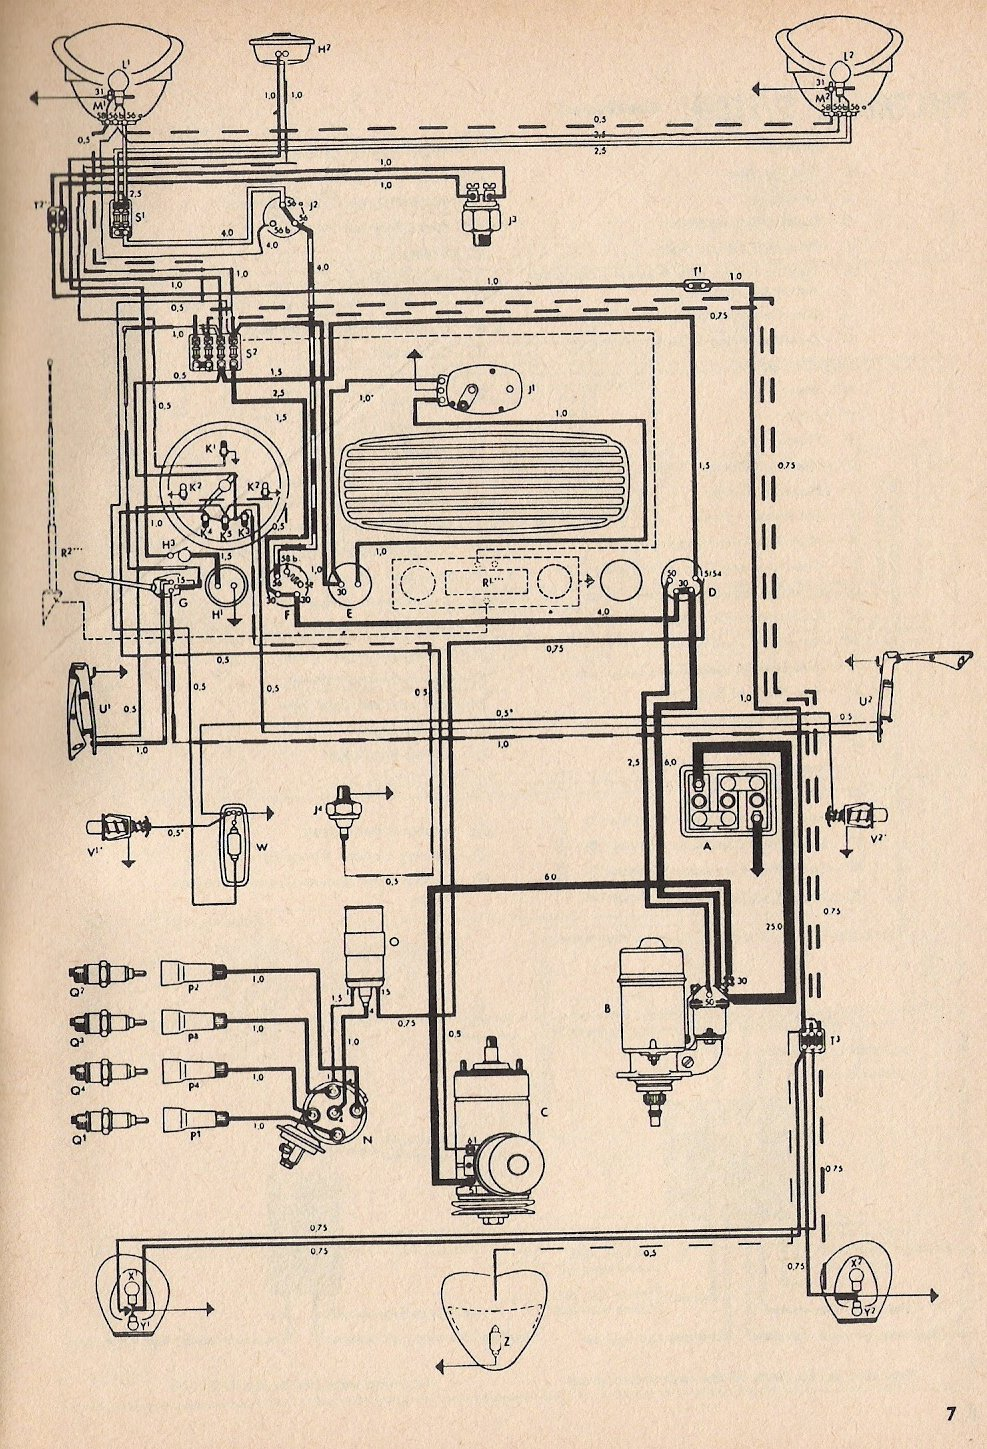 Bug on 1968 vw beetle wiring diagram